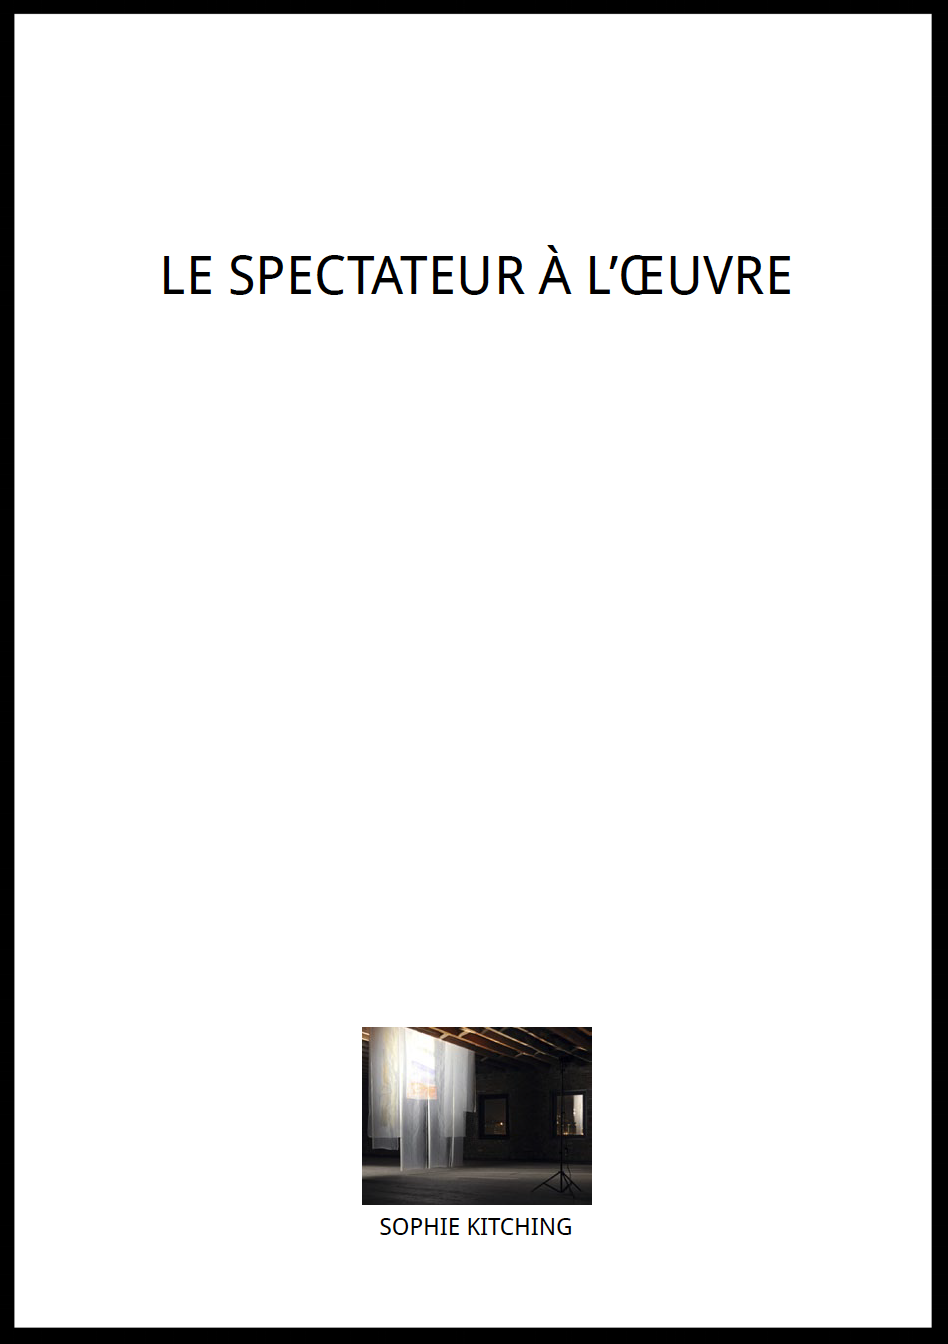 sophiekitching_lespectateuraloeuvre_2013.png